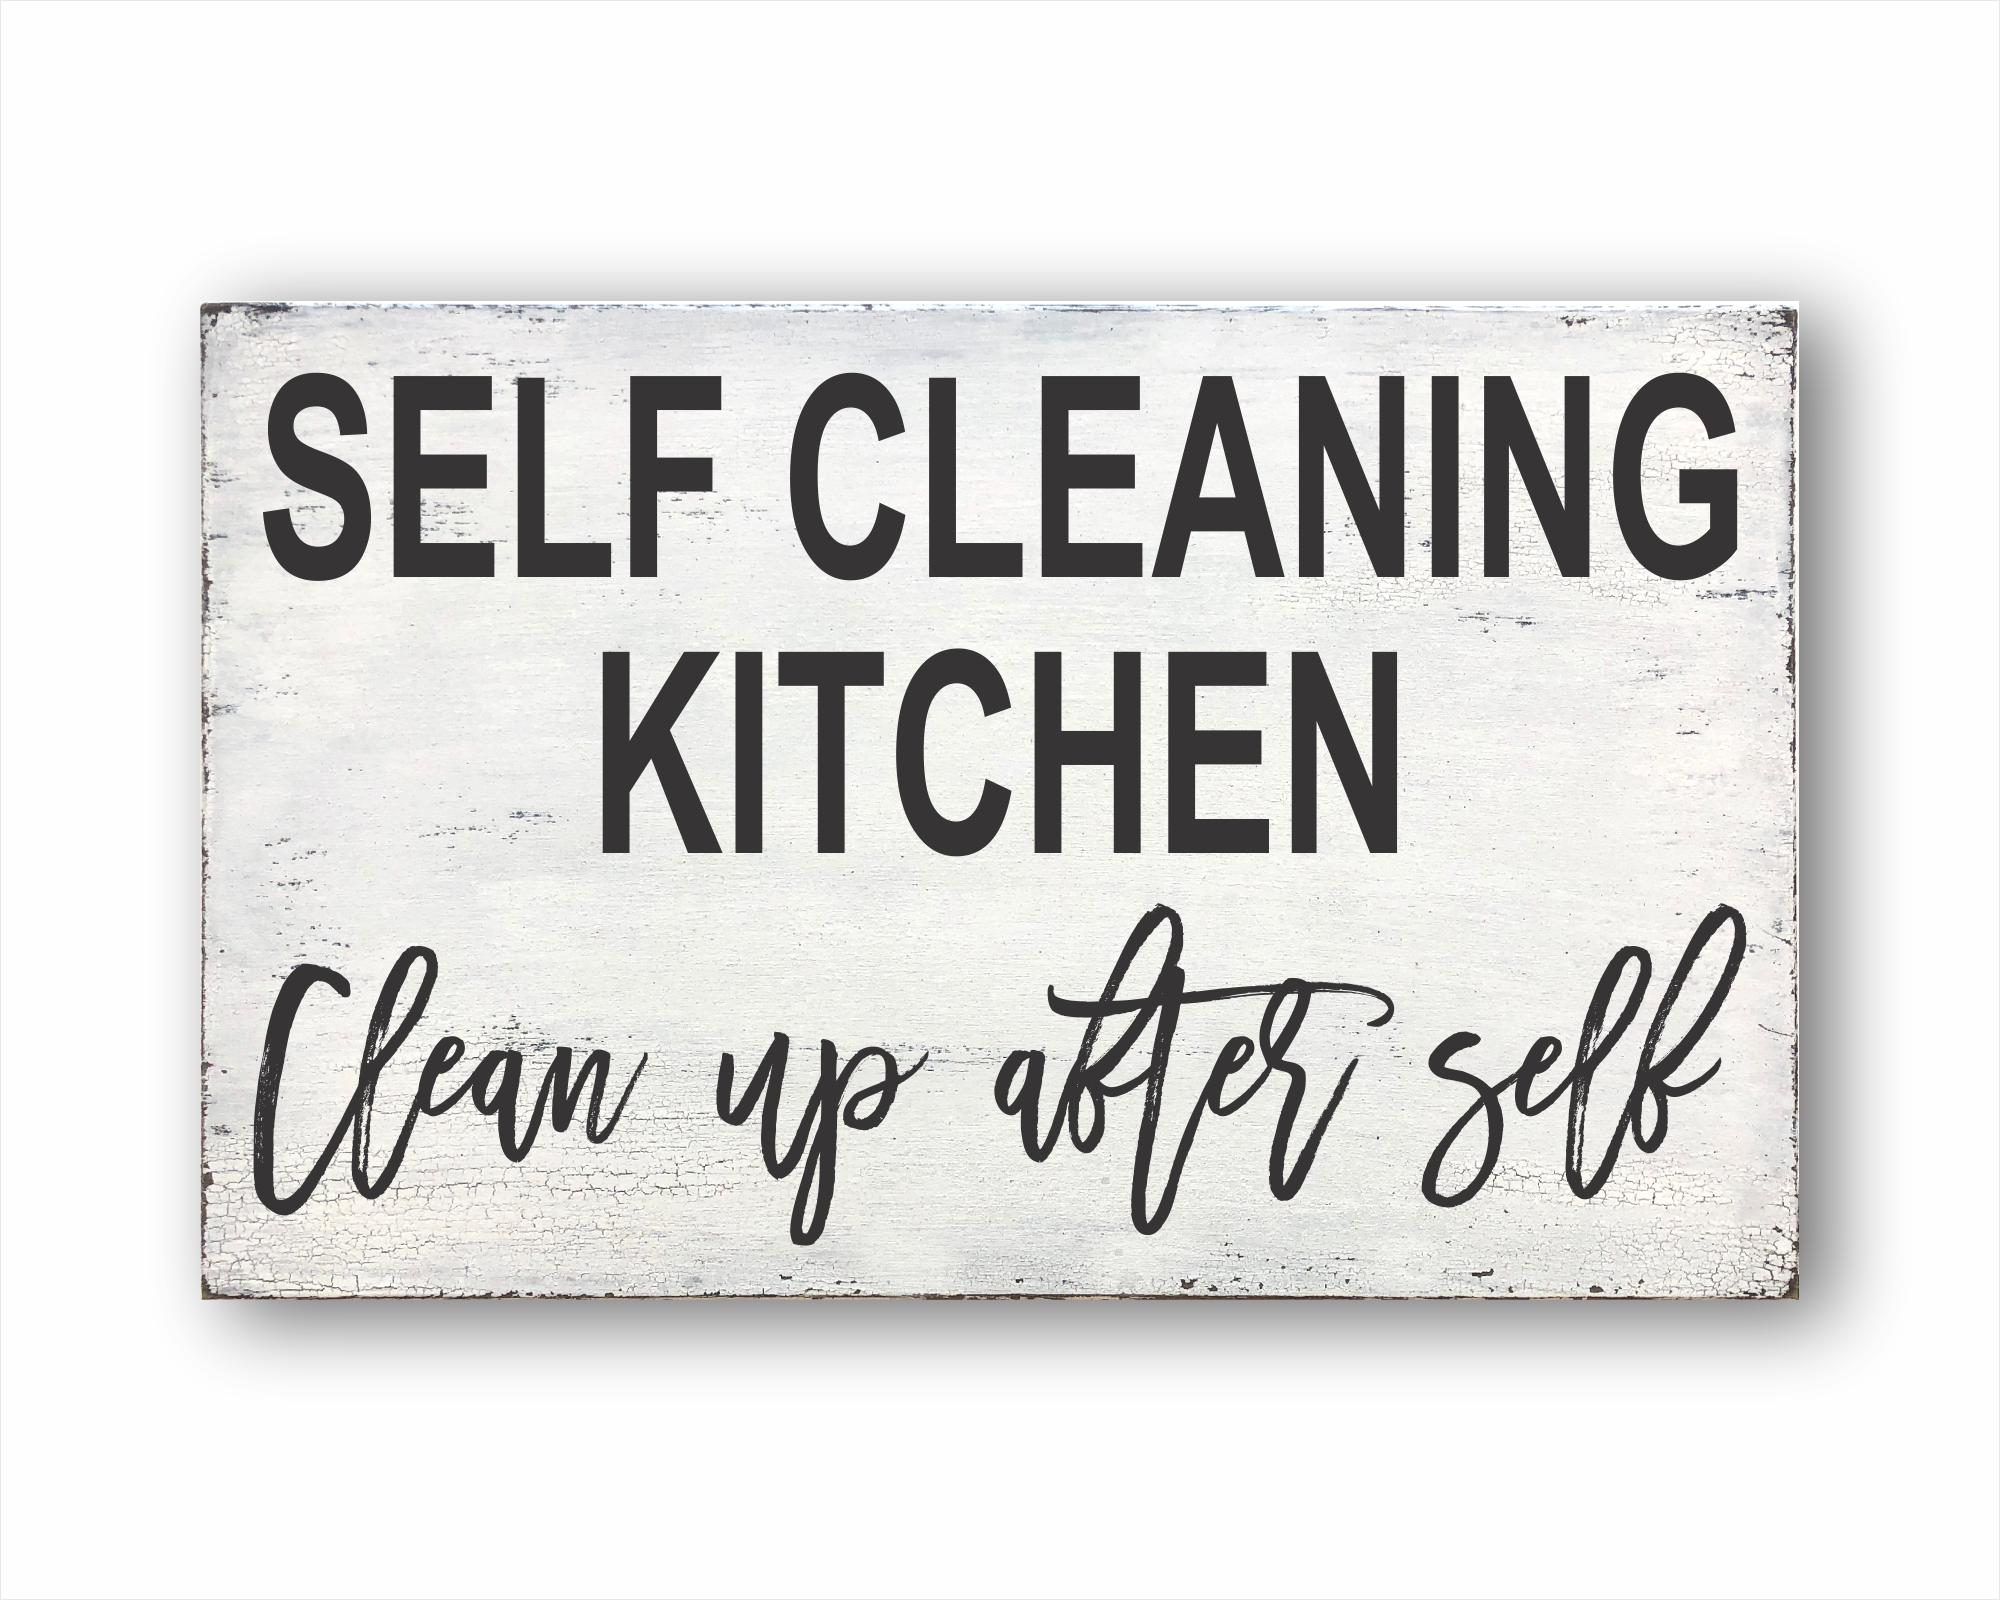 Self Cleaning Kitchen Clean Up After Self: Rustic Rectangle Wood Sign